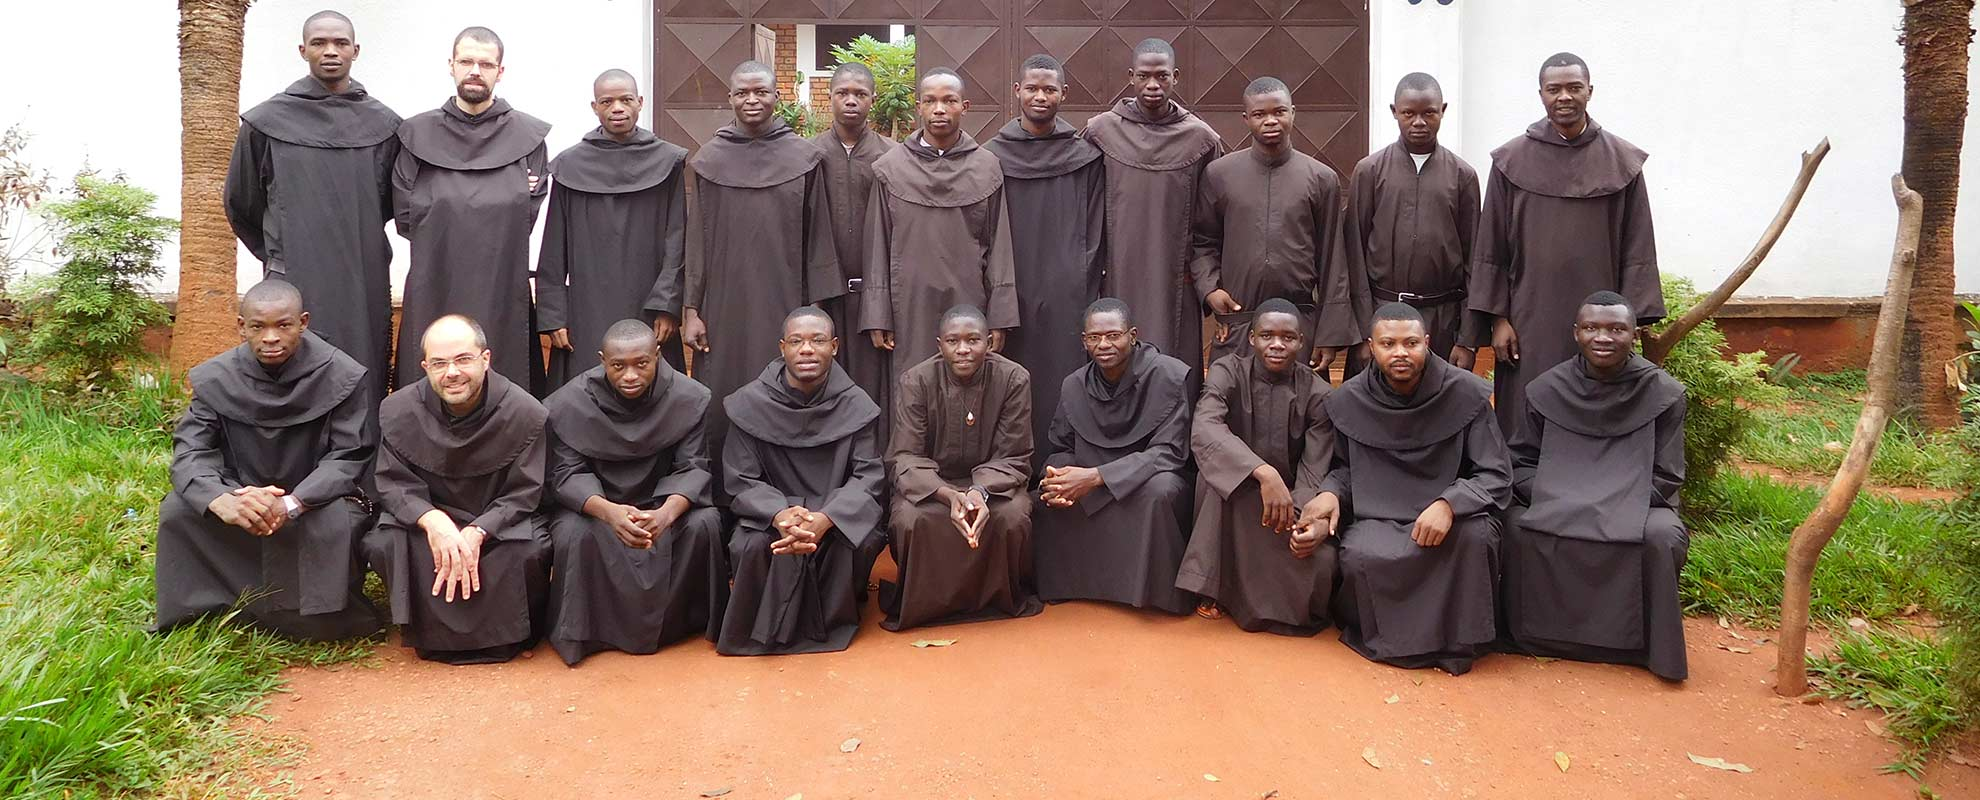 Central African Republic and Cameroon: Help for the formation of 39 young Carmelite friars